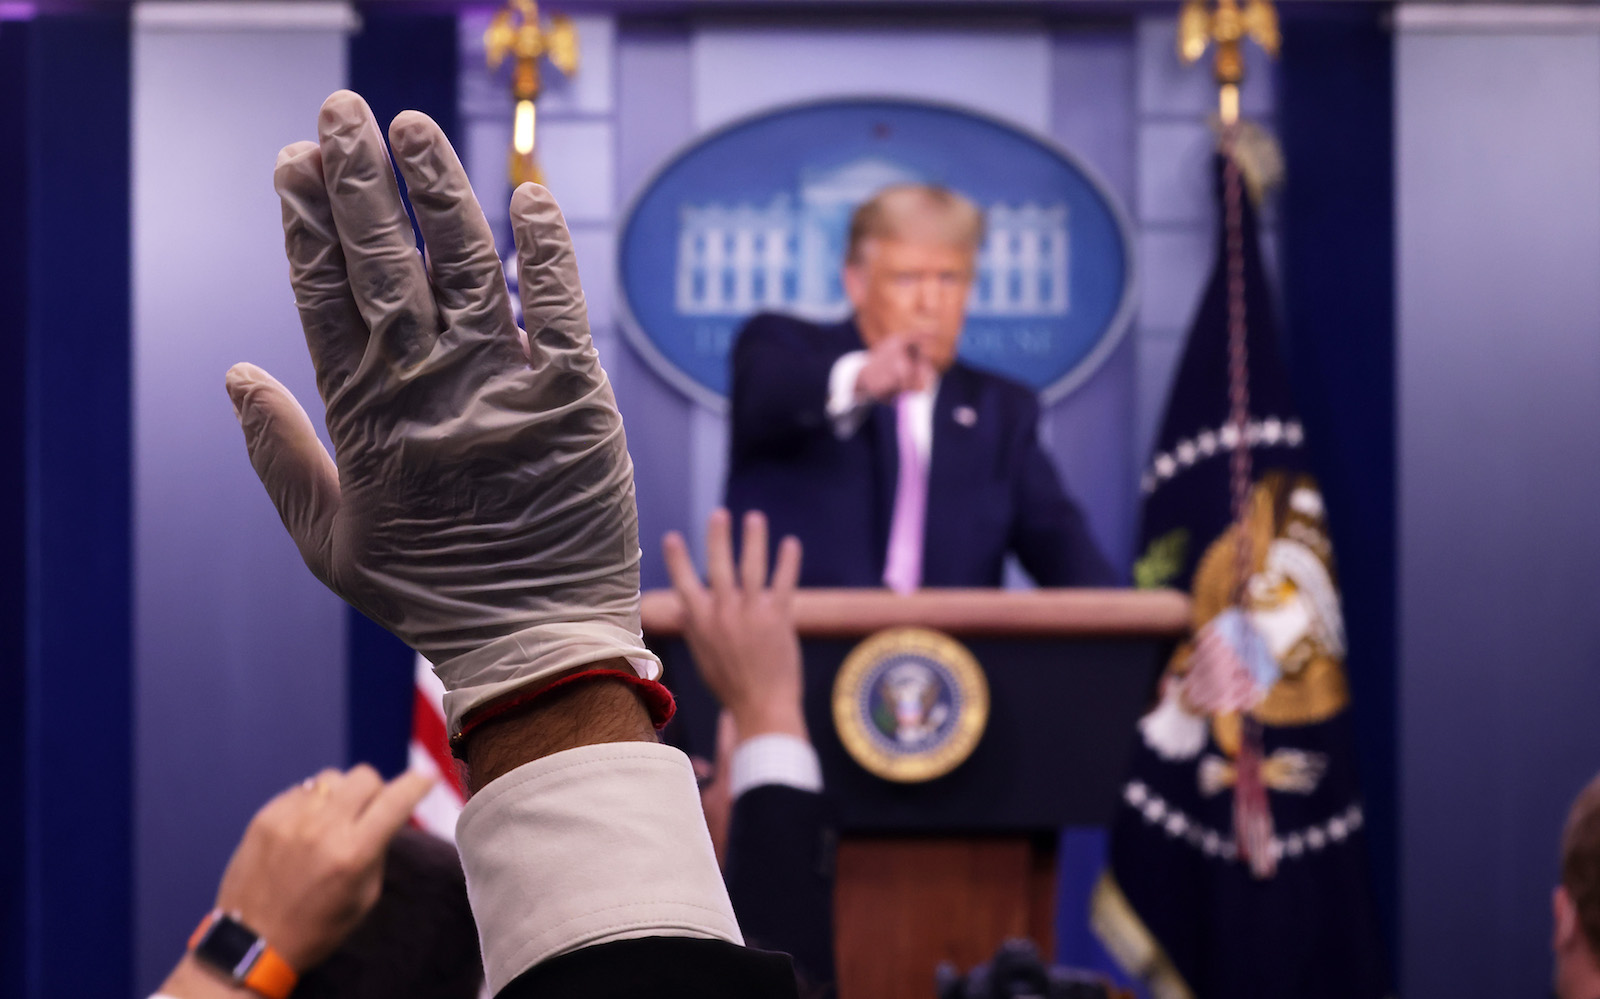 US President Donald Trump takes questions during a new conference at the White House, 11 August 2020 (Alex Wong/Getty Images)